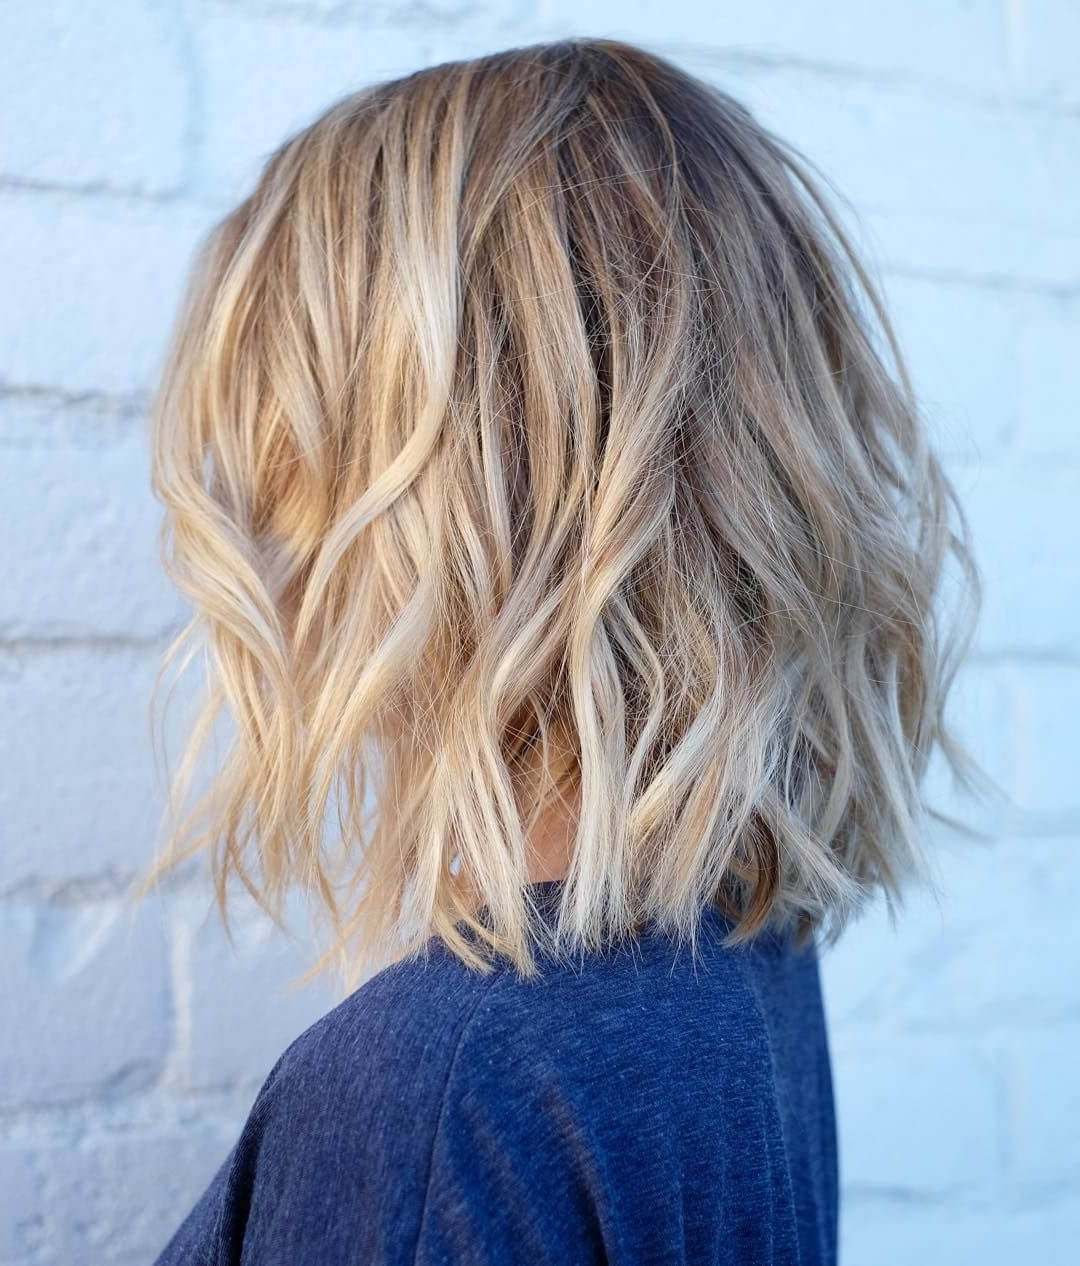 Famous Shaggy Highlighted Blonde Bob Hairstyles Inside 50 Fresh Short Blonde Hair Ideas To Update Your Style In  (View 11 of 20)